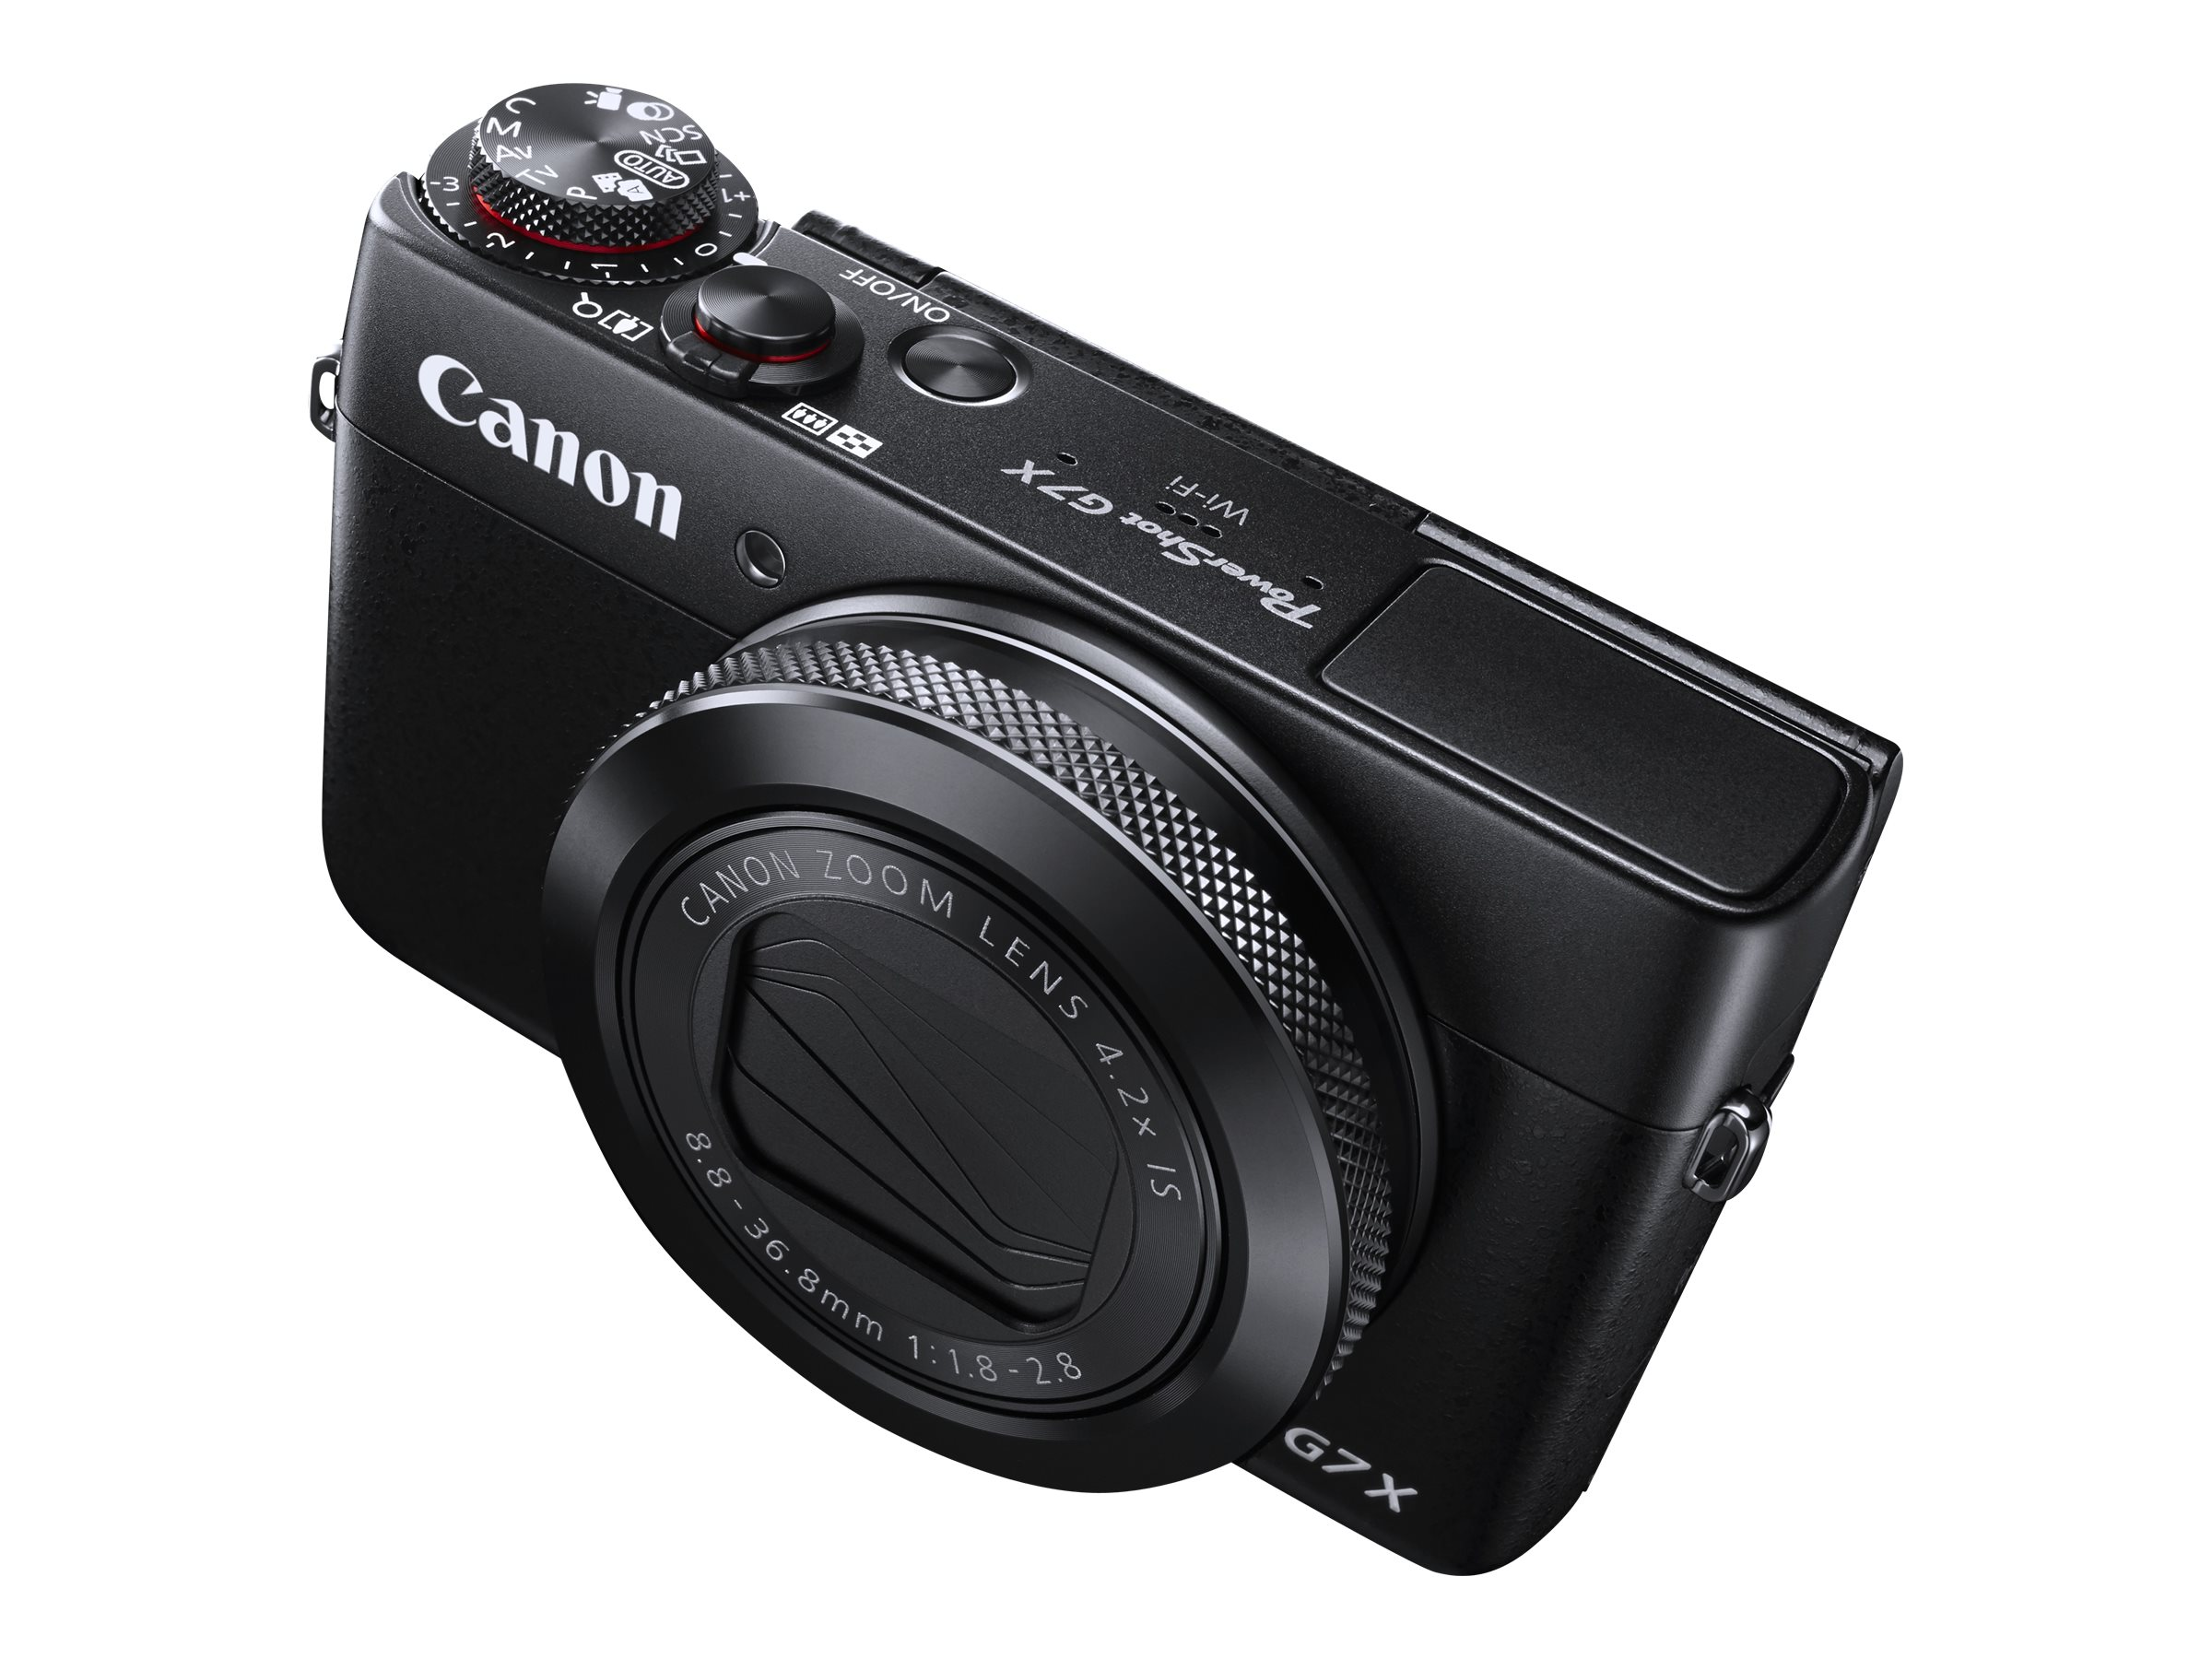 Canon PowerShot G7 X Digital Camera, 20.2MP, Black, 9546B001